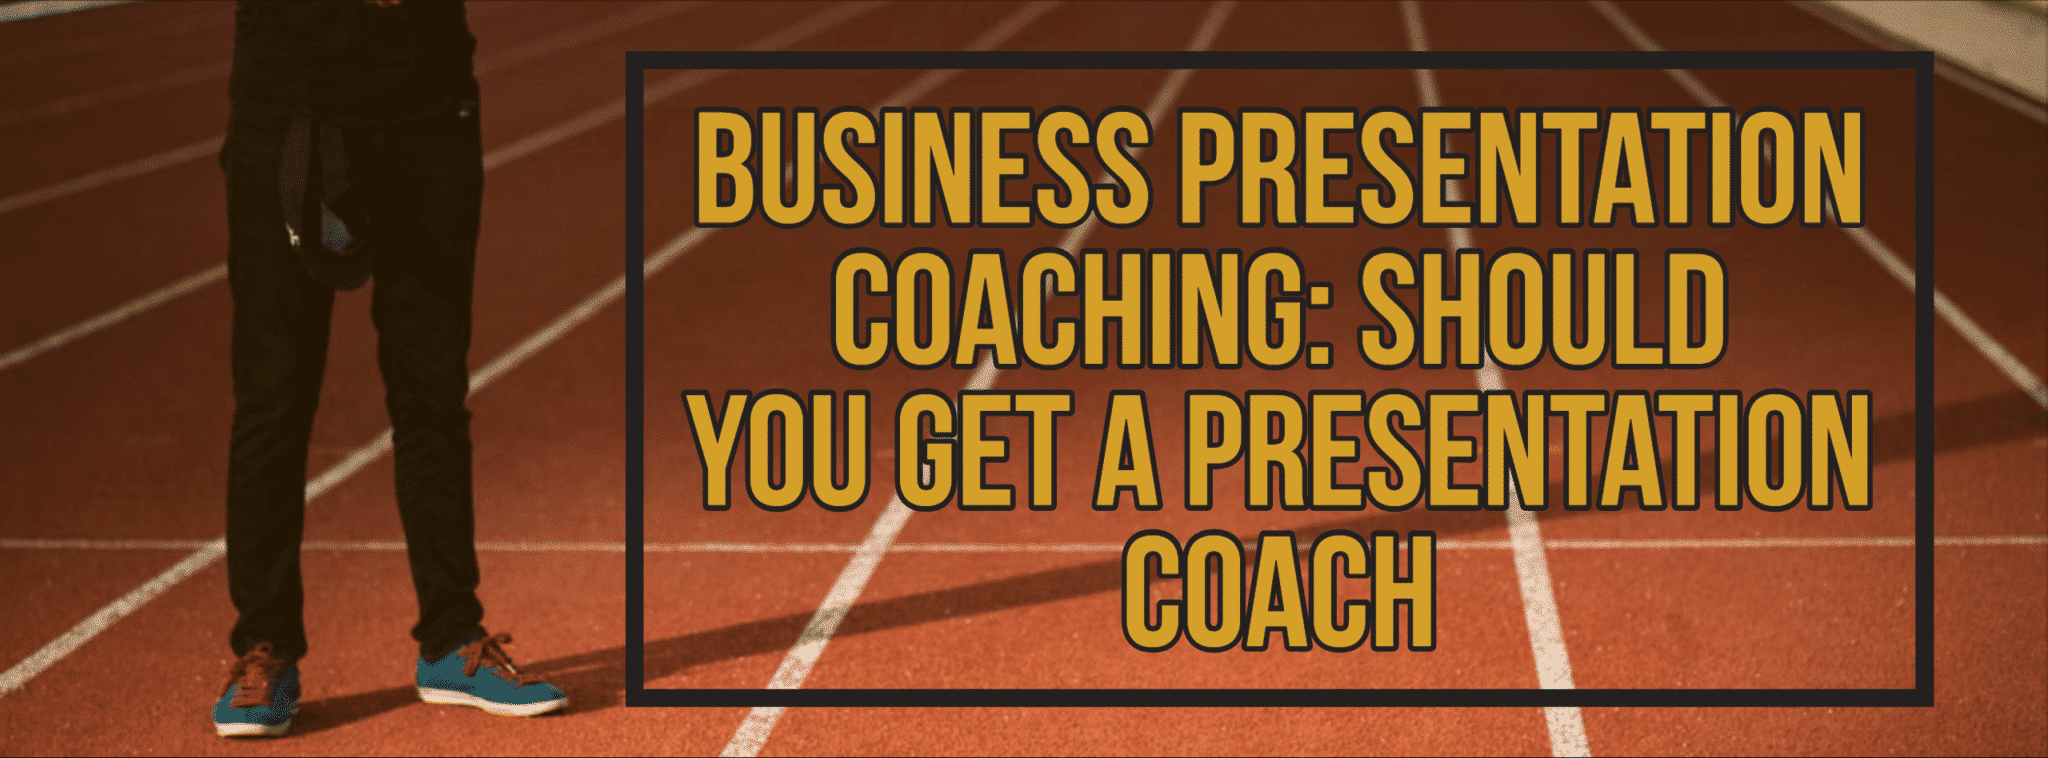 Business Presentation Coaching_ Should You Get a Presentation Coach_